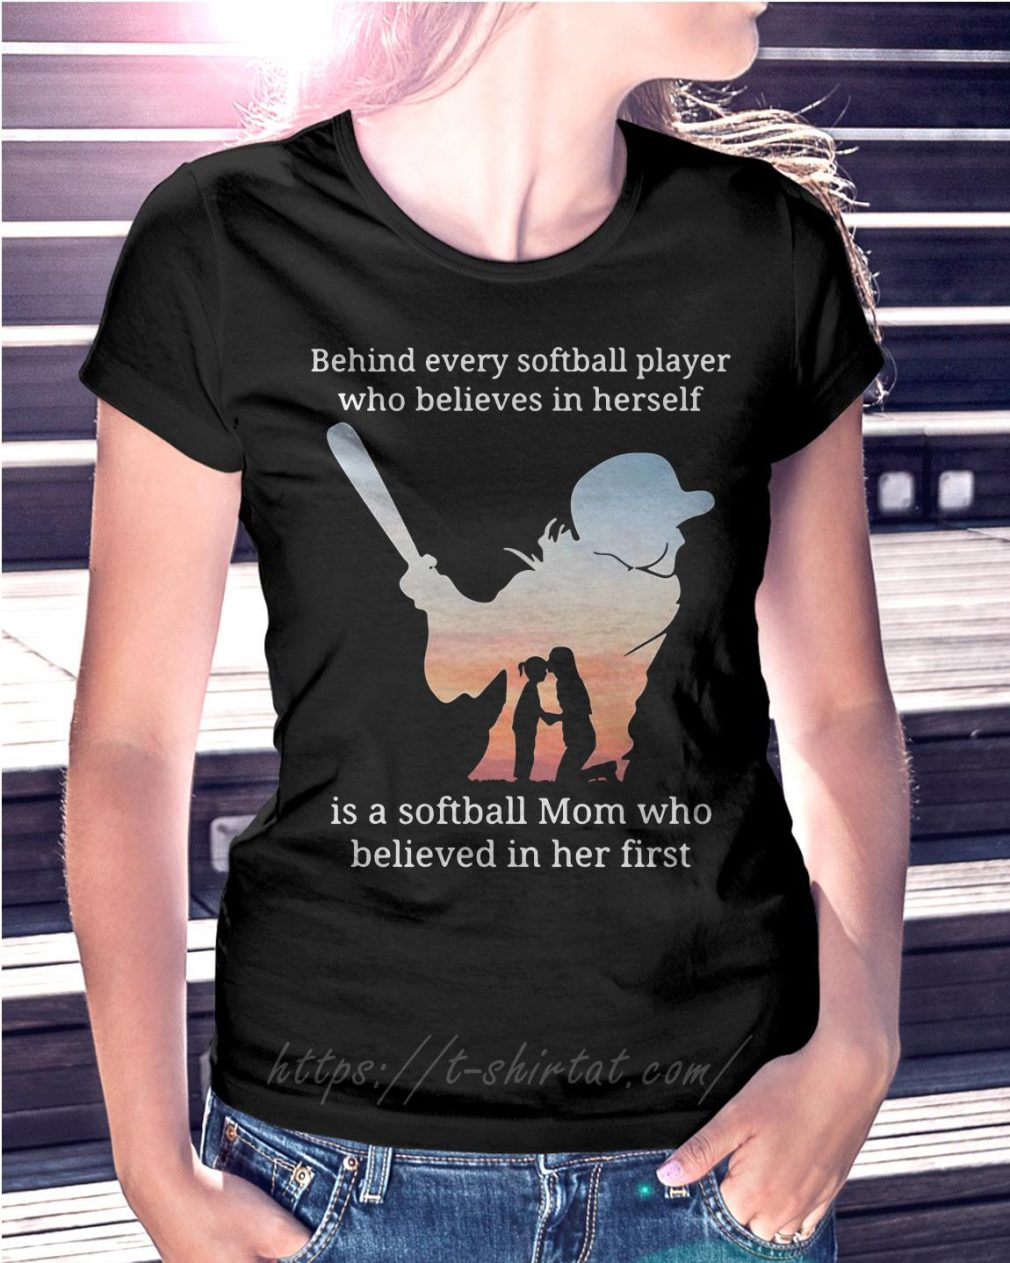 Behind every softball player who believes in herself is a softball mom who believed in her first